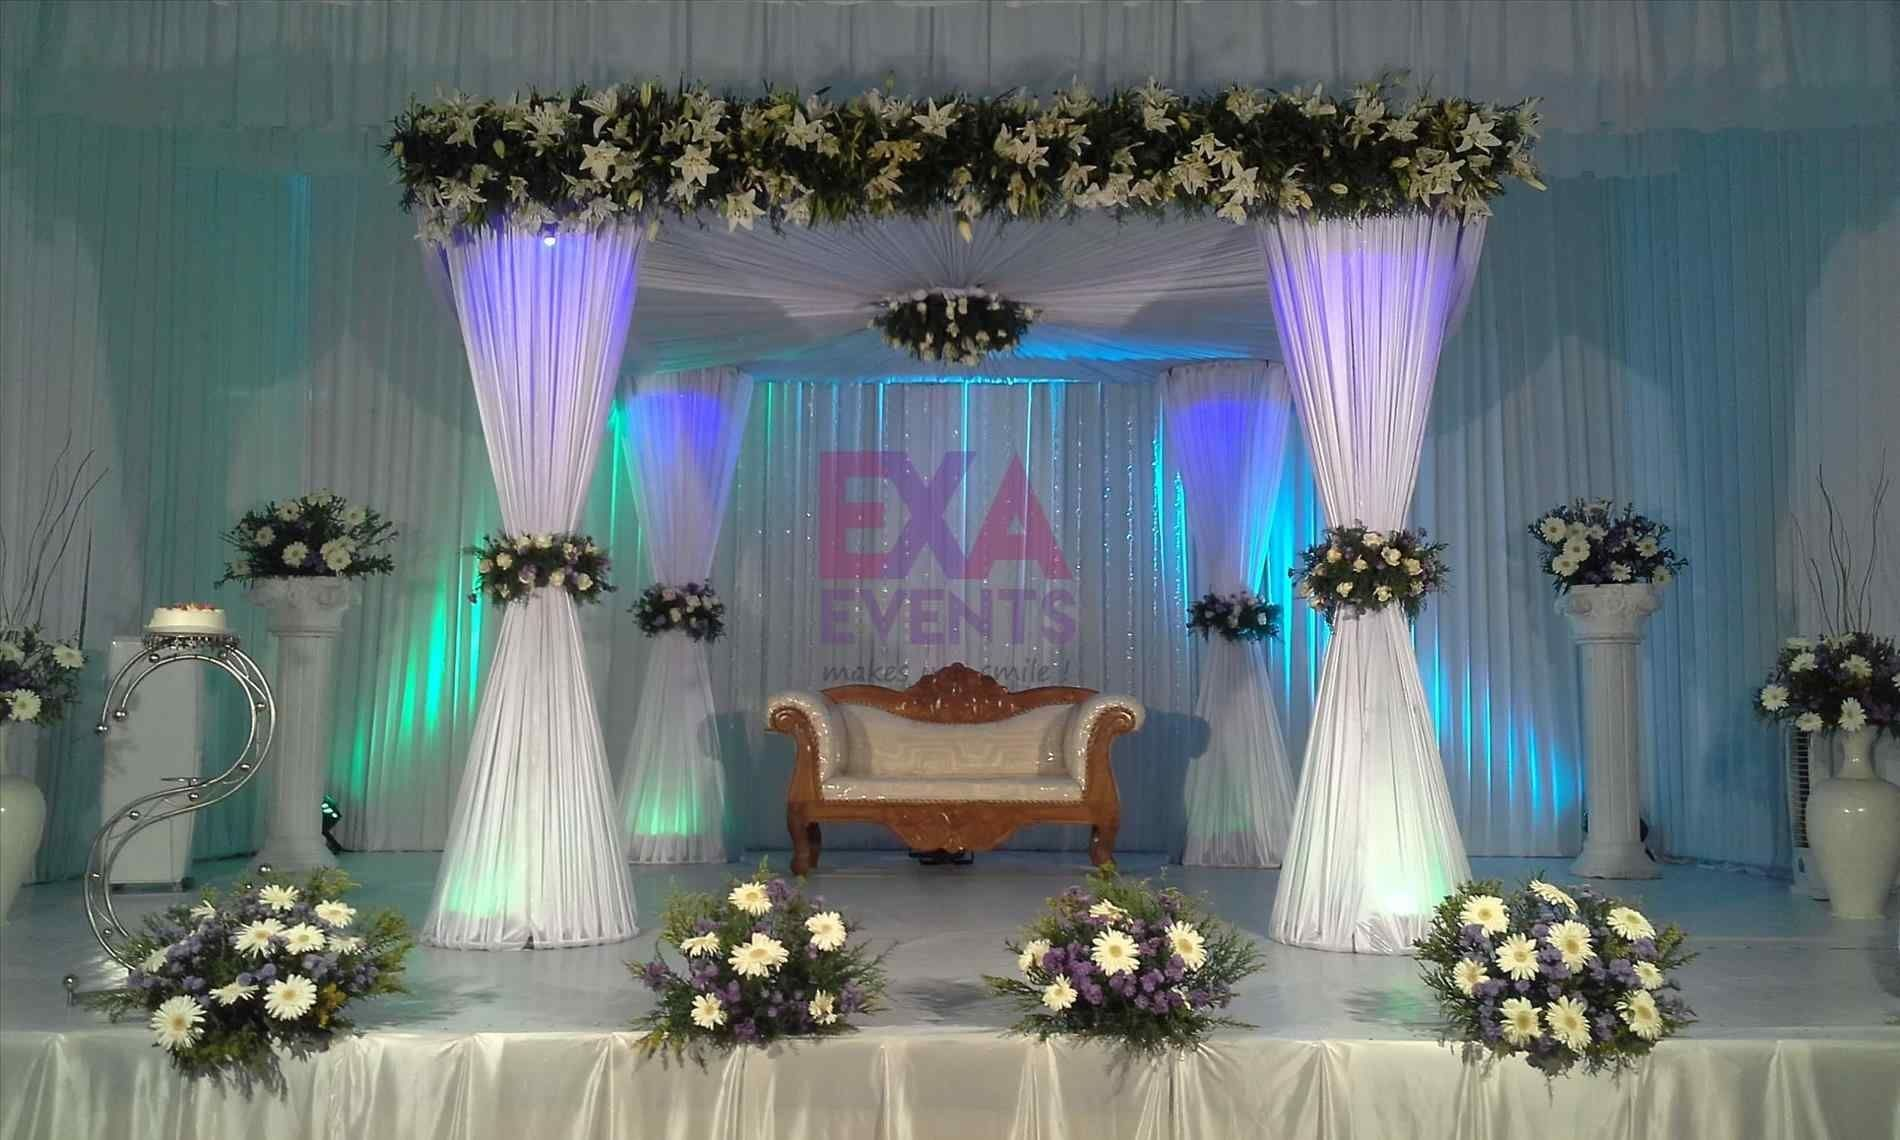 Simple Christian Wedding Decoration Pictures Wedding Stage Stage Decorations Wedding Decorations Pictures